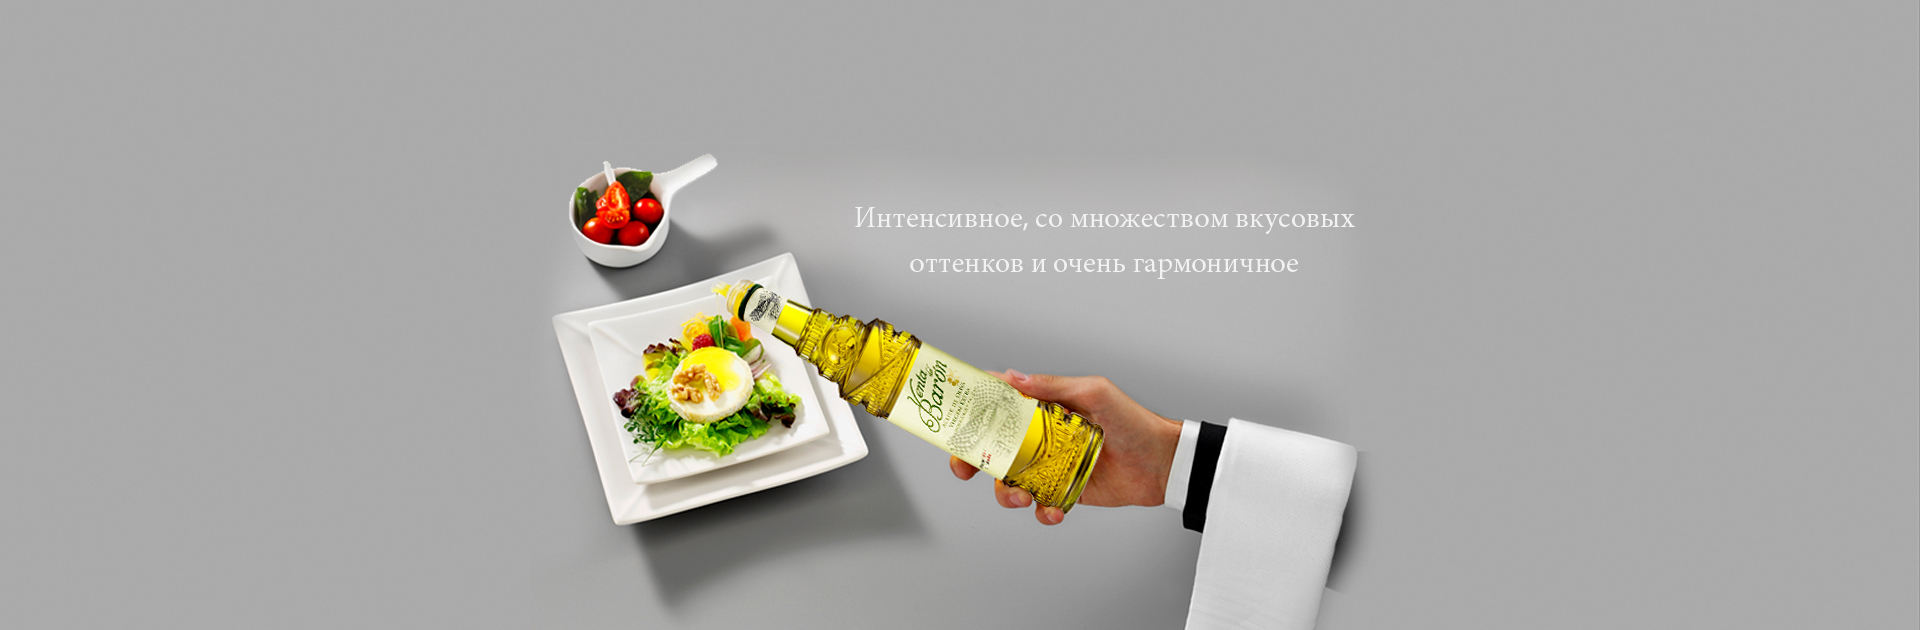 banner_ruso_1920x630px-3